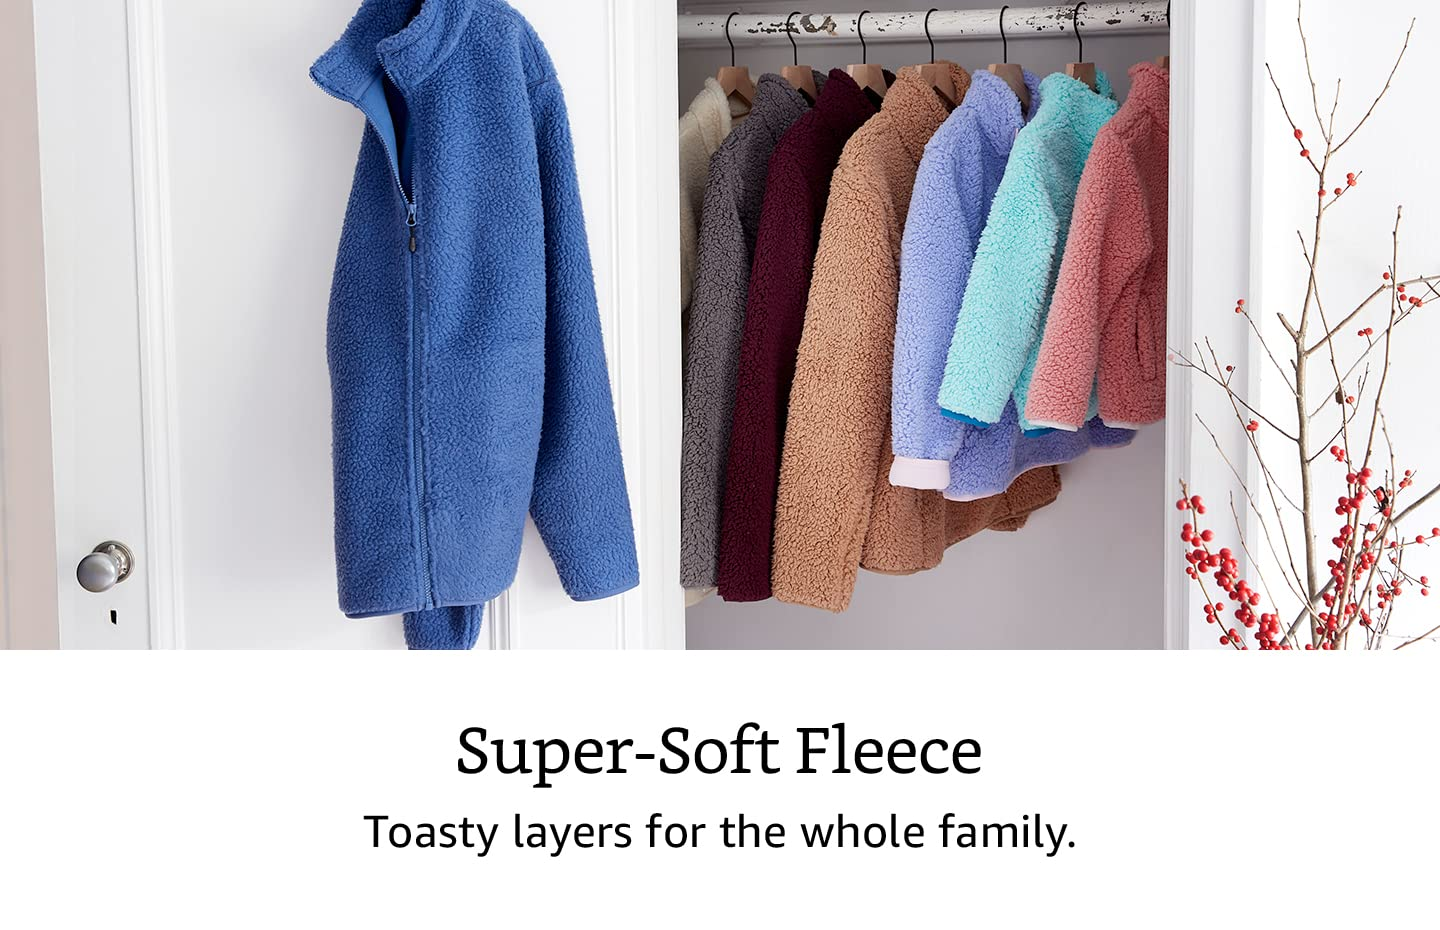 Super-soft fleece